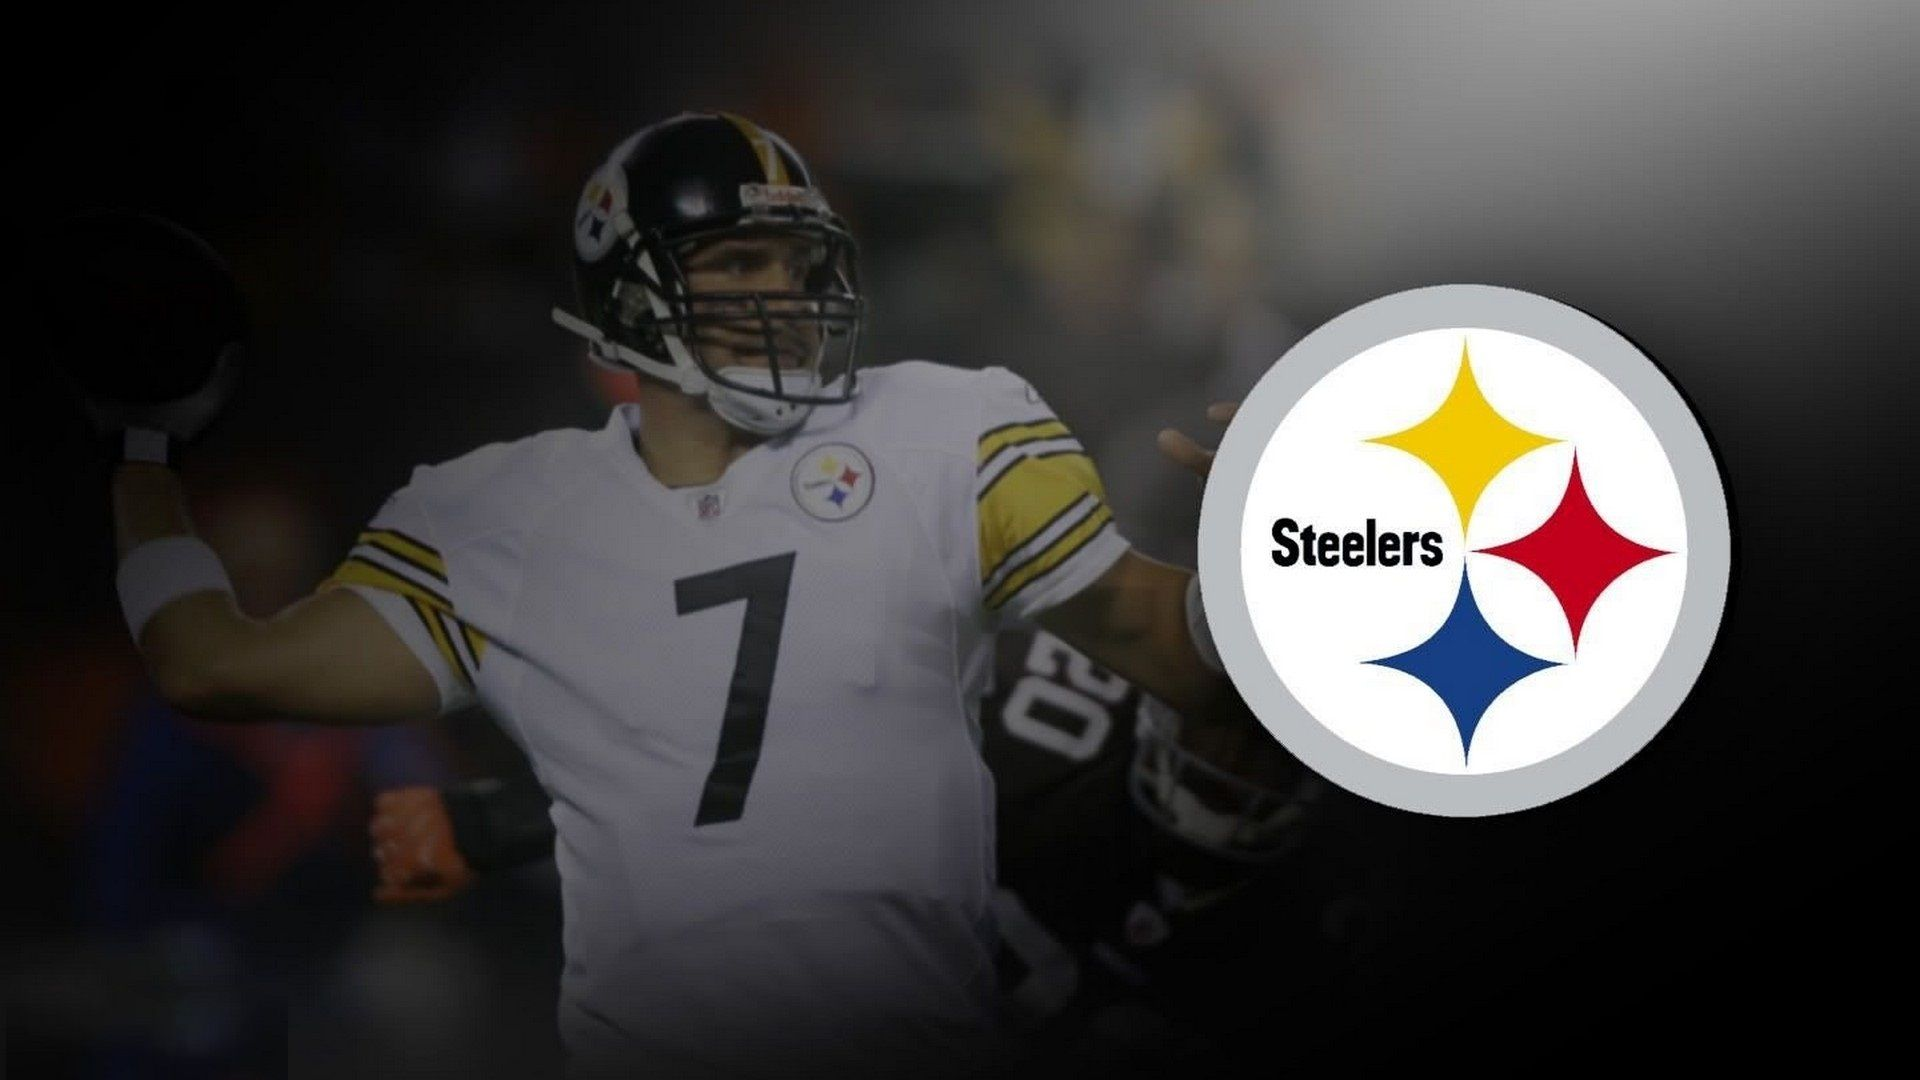 NFL Steelers Desktop Wallpaper Steelers images